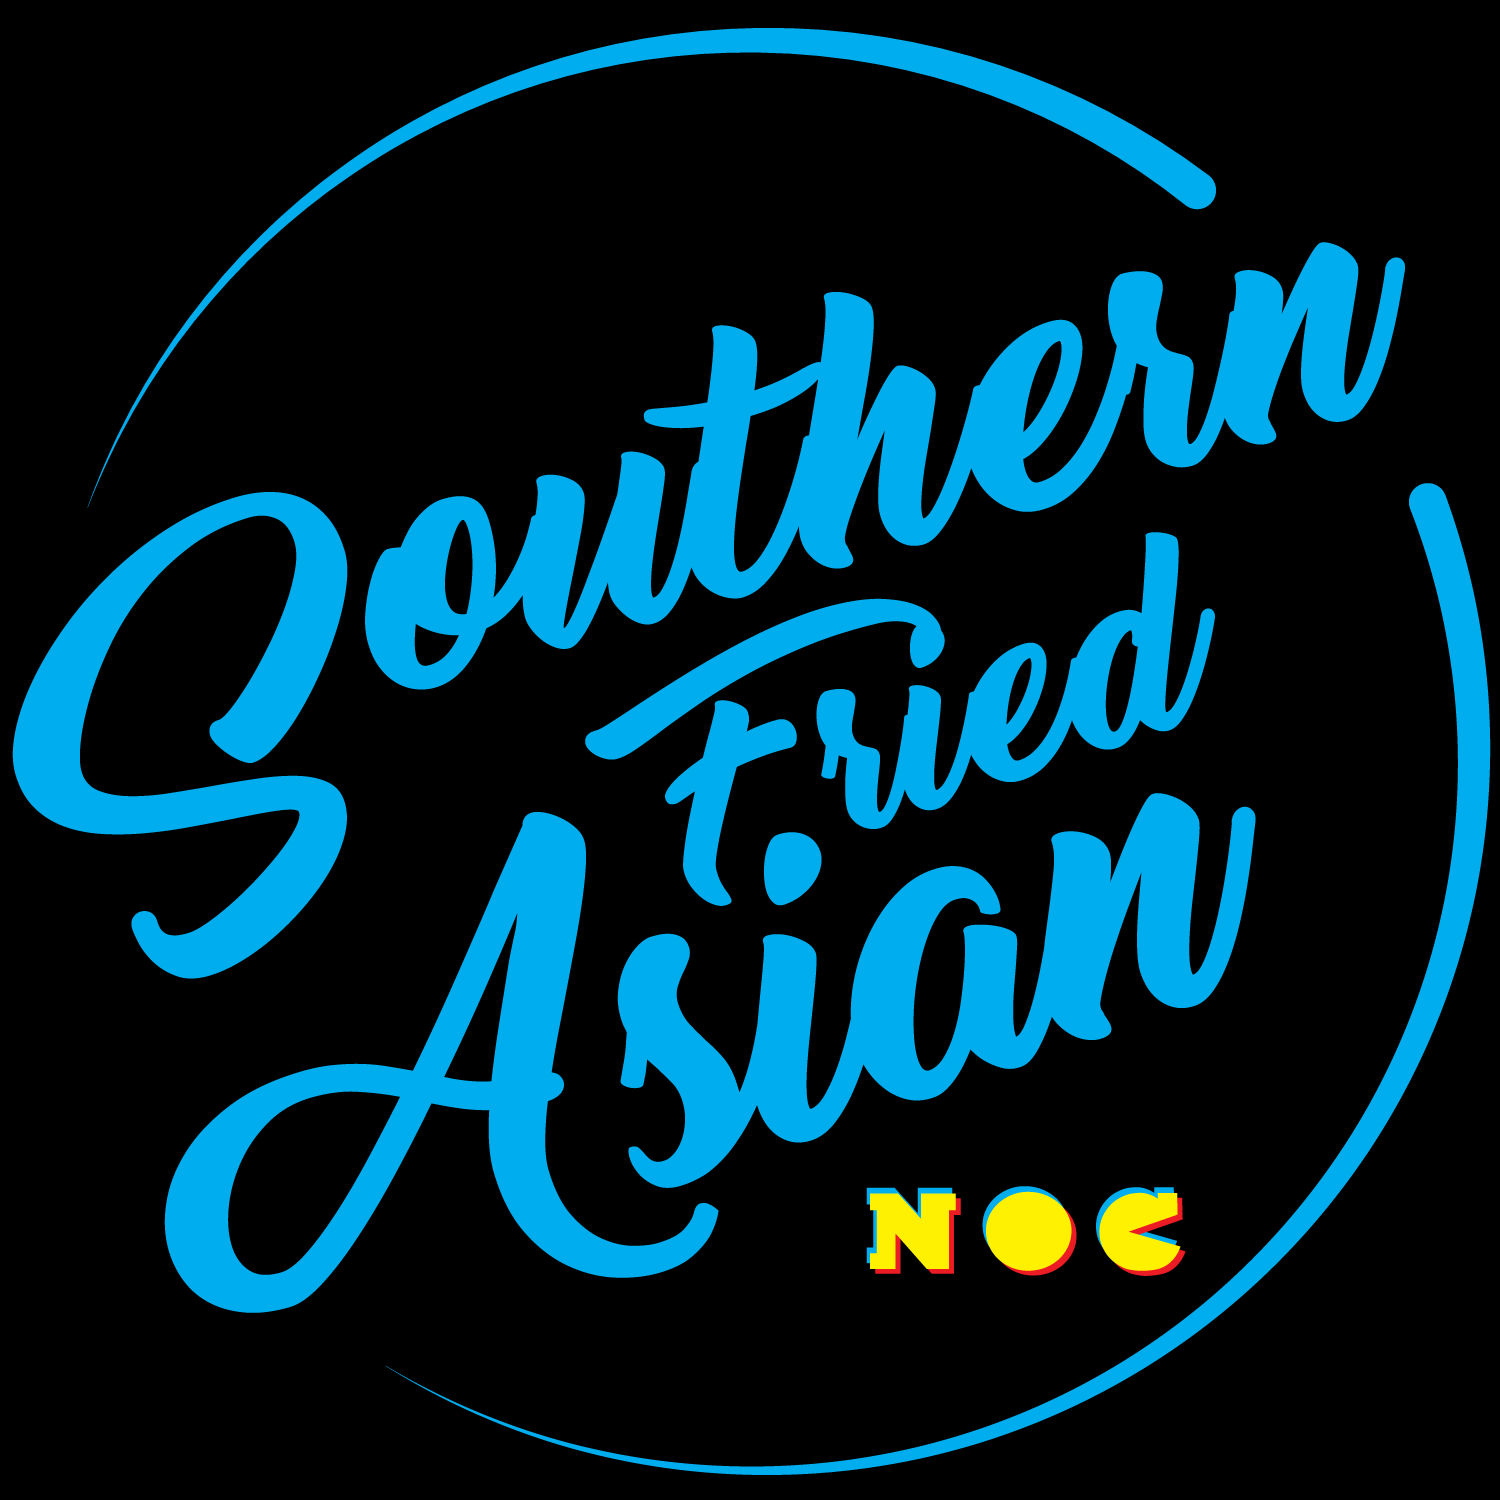 Southern Fried Asian - A podcast about being Asian American in the South, hosted by Keith Chow (@the_real_chow) and co-produced by Jes Vu (@jesthevu).